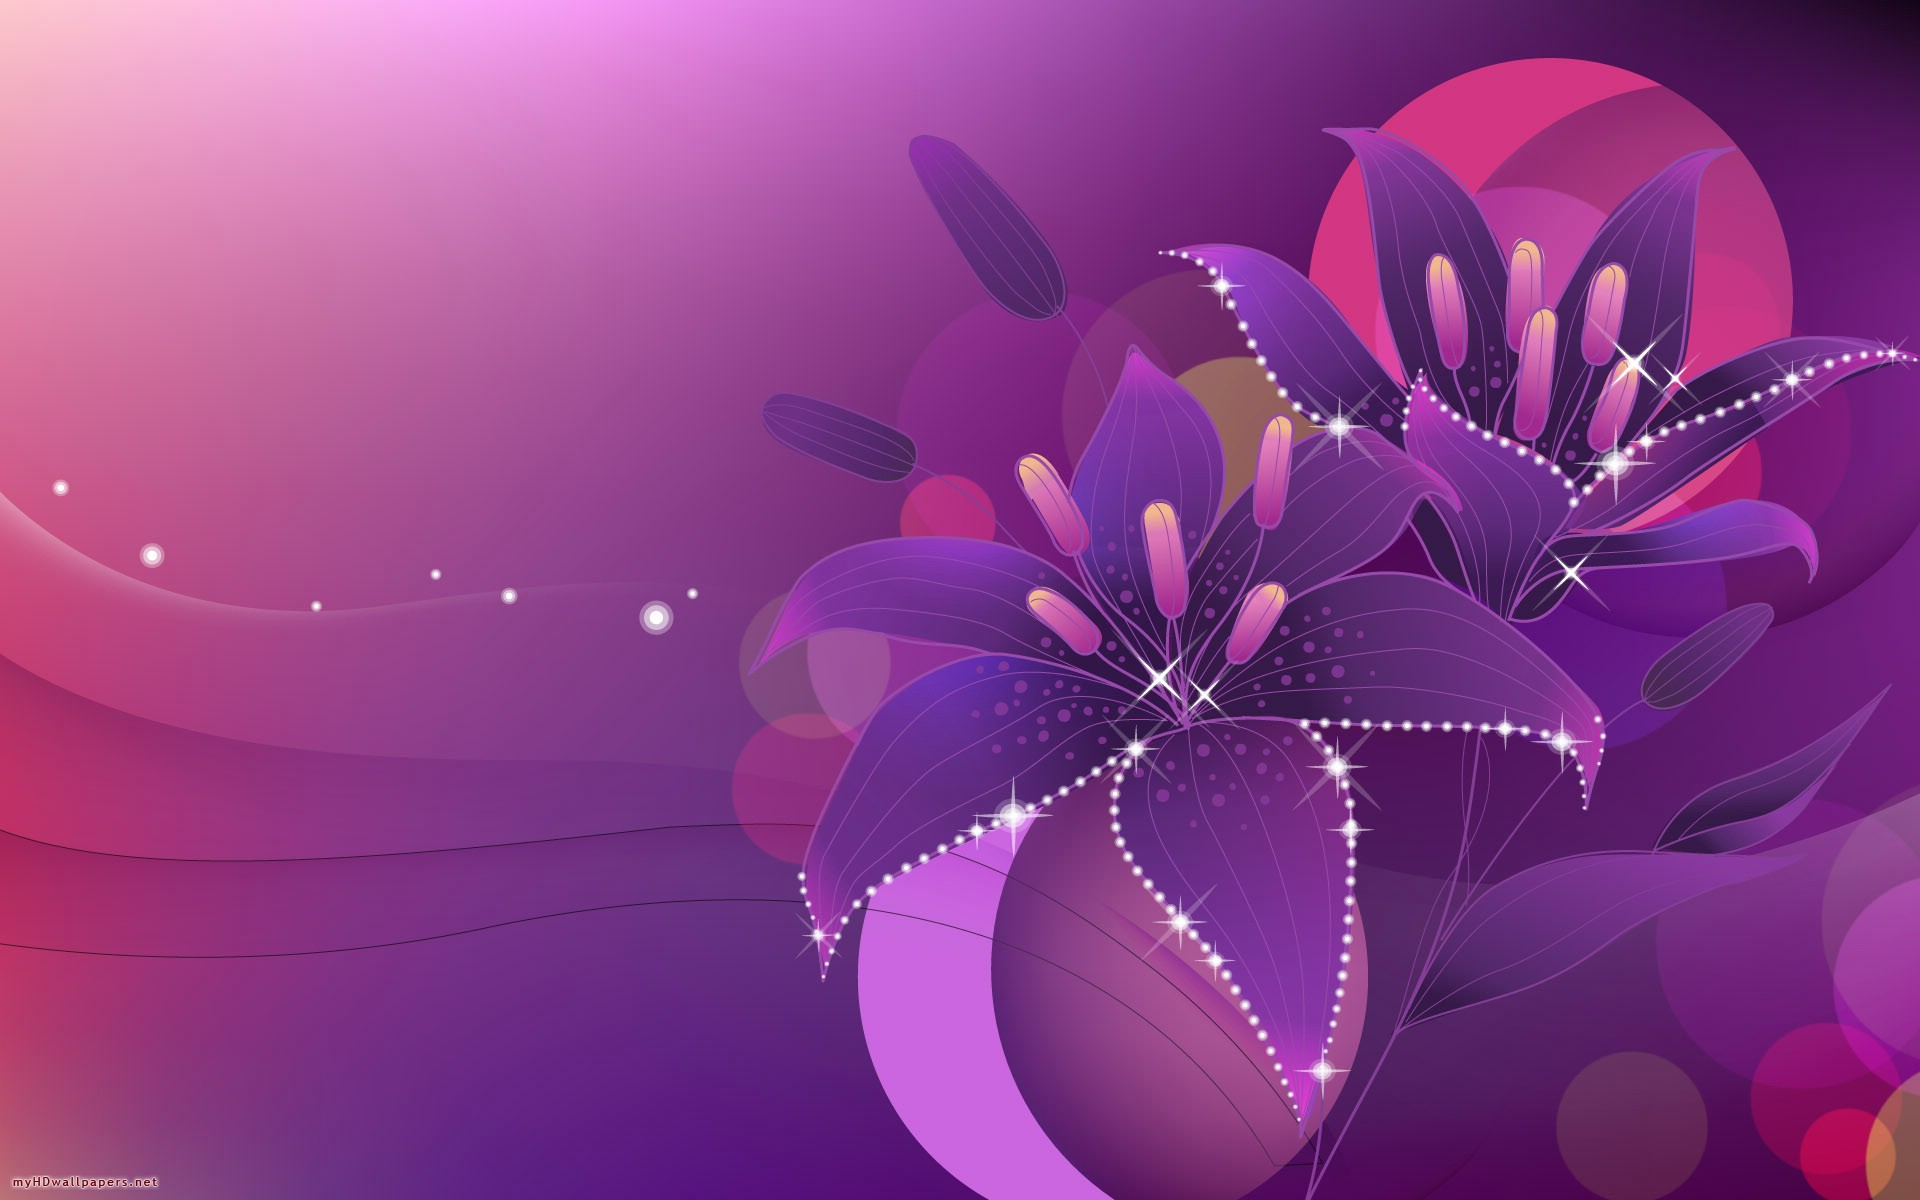 39 High Definition Purple Wallpaper Images for Download 1920x1200